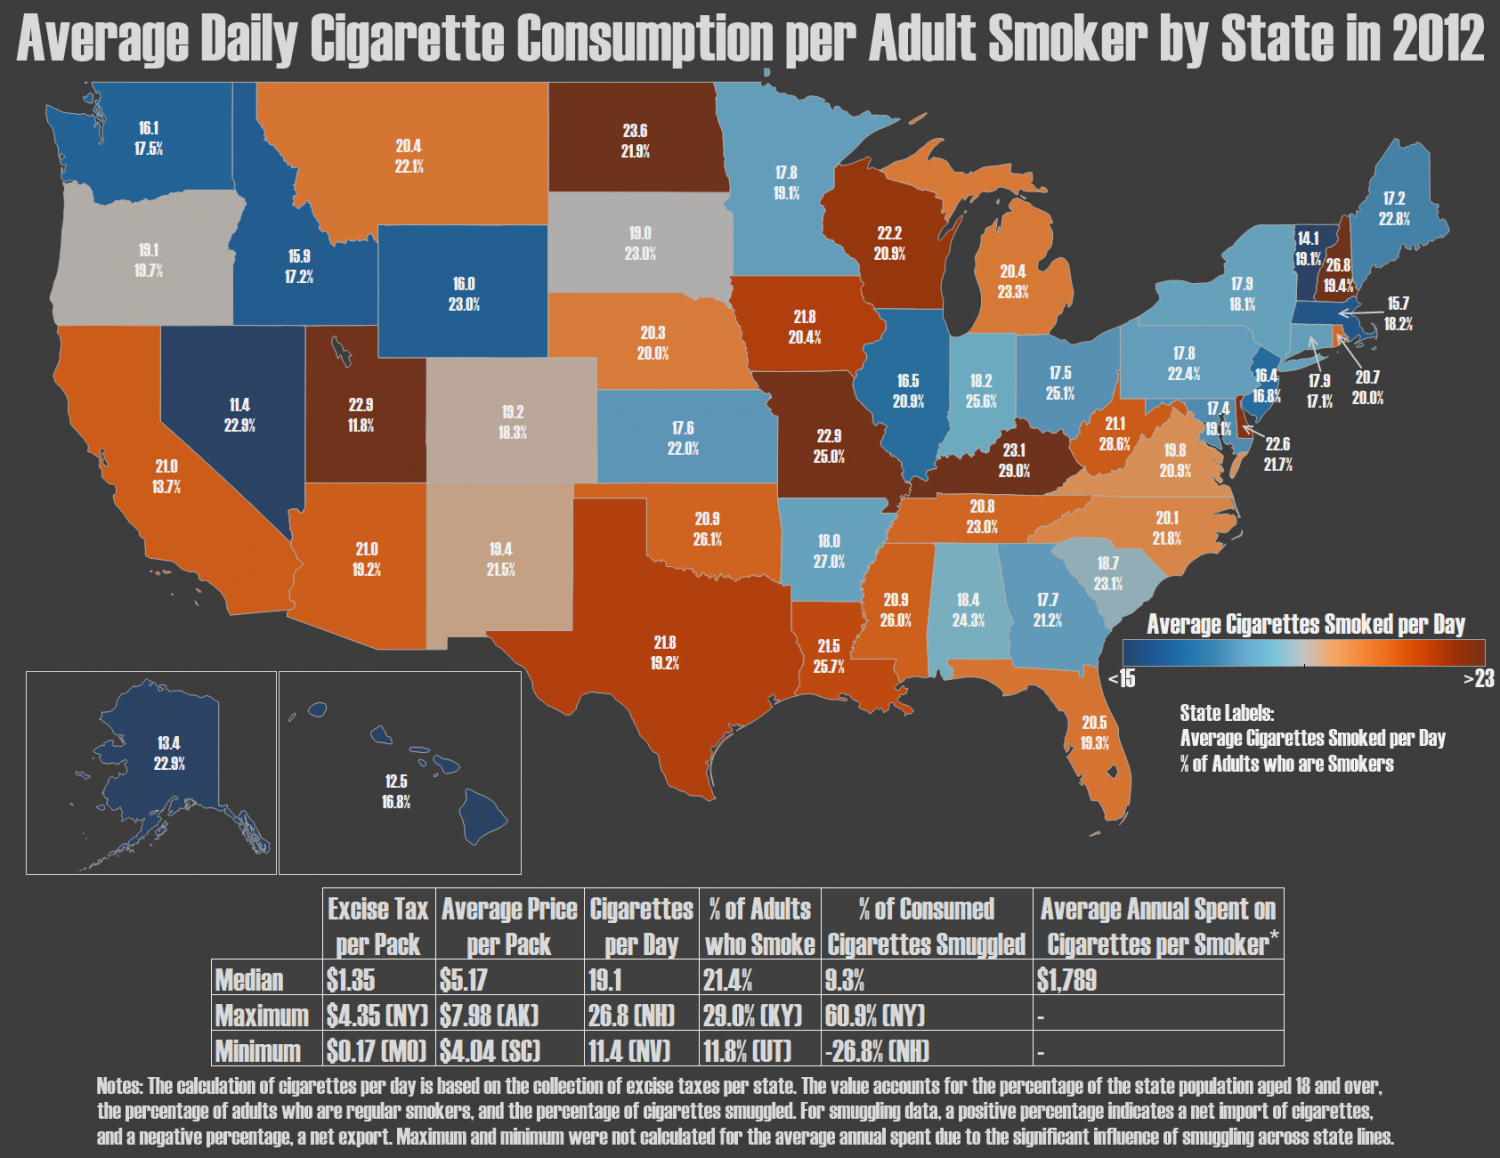 Average Daily Cigarette Consumption per Adult Smoker by State  Infographic